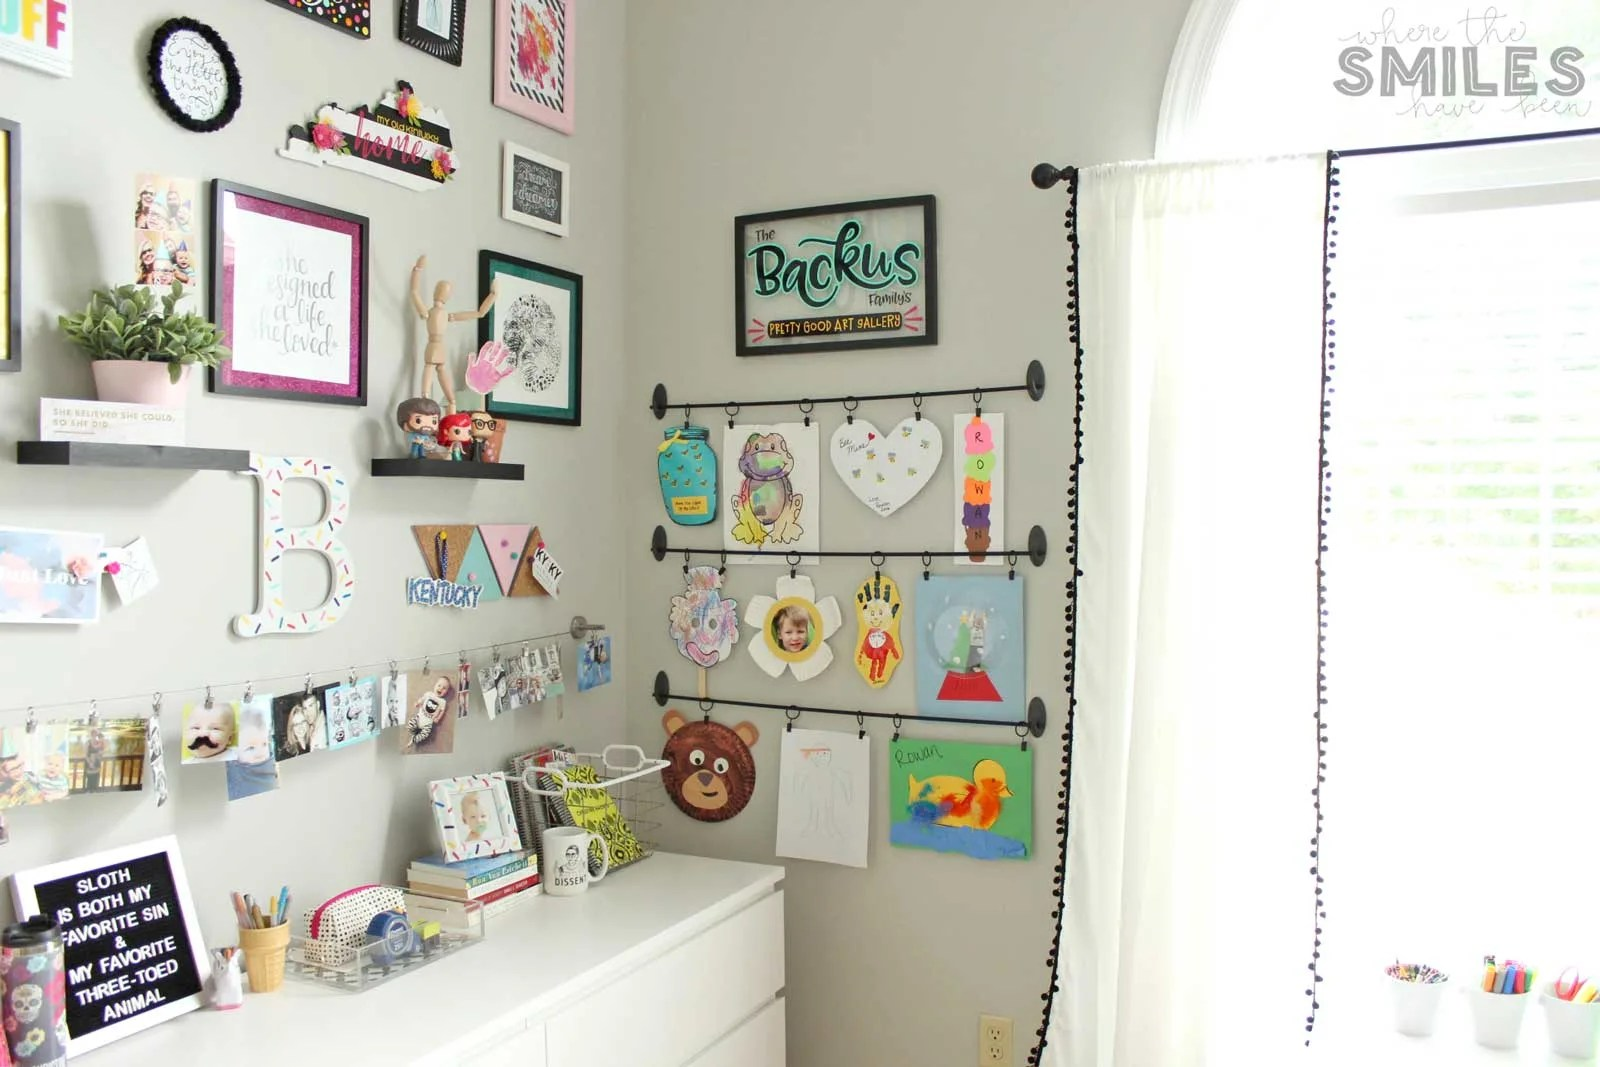 Easy DIY Kids Art Display: Simple, Inexpensive, & No Damage! | Where The Smiles Have Been #kids #art #artdisplay